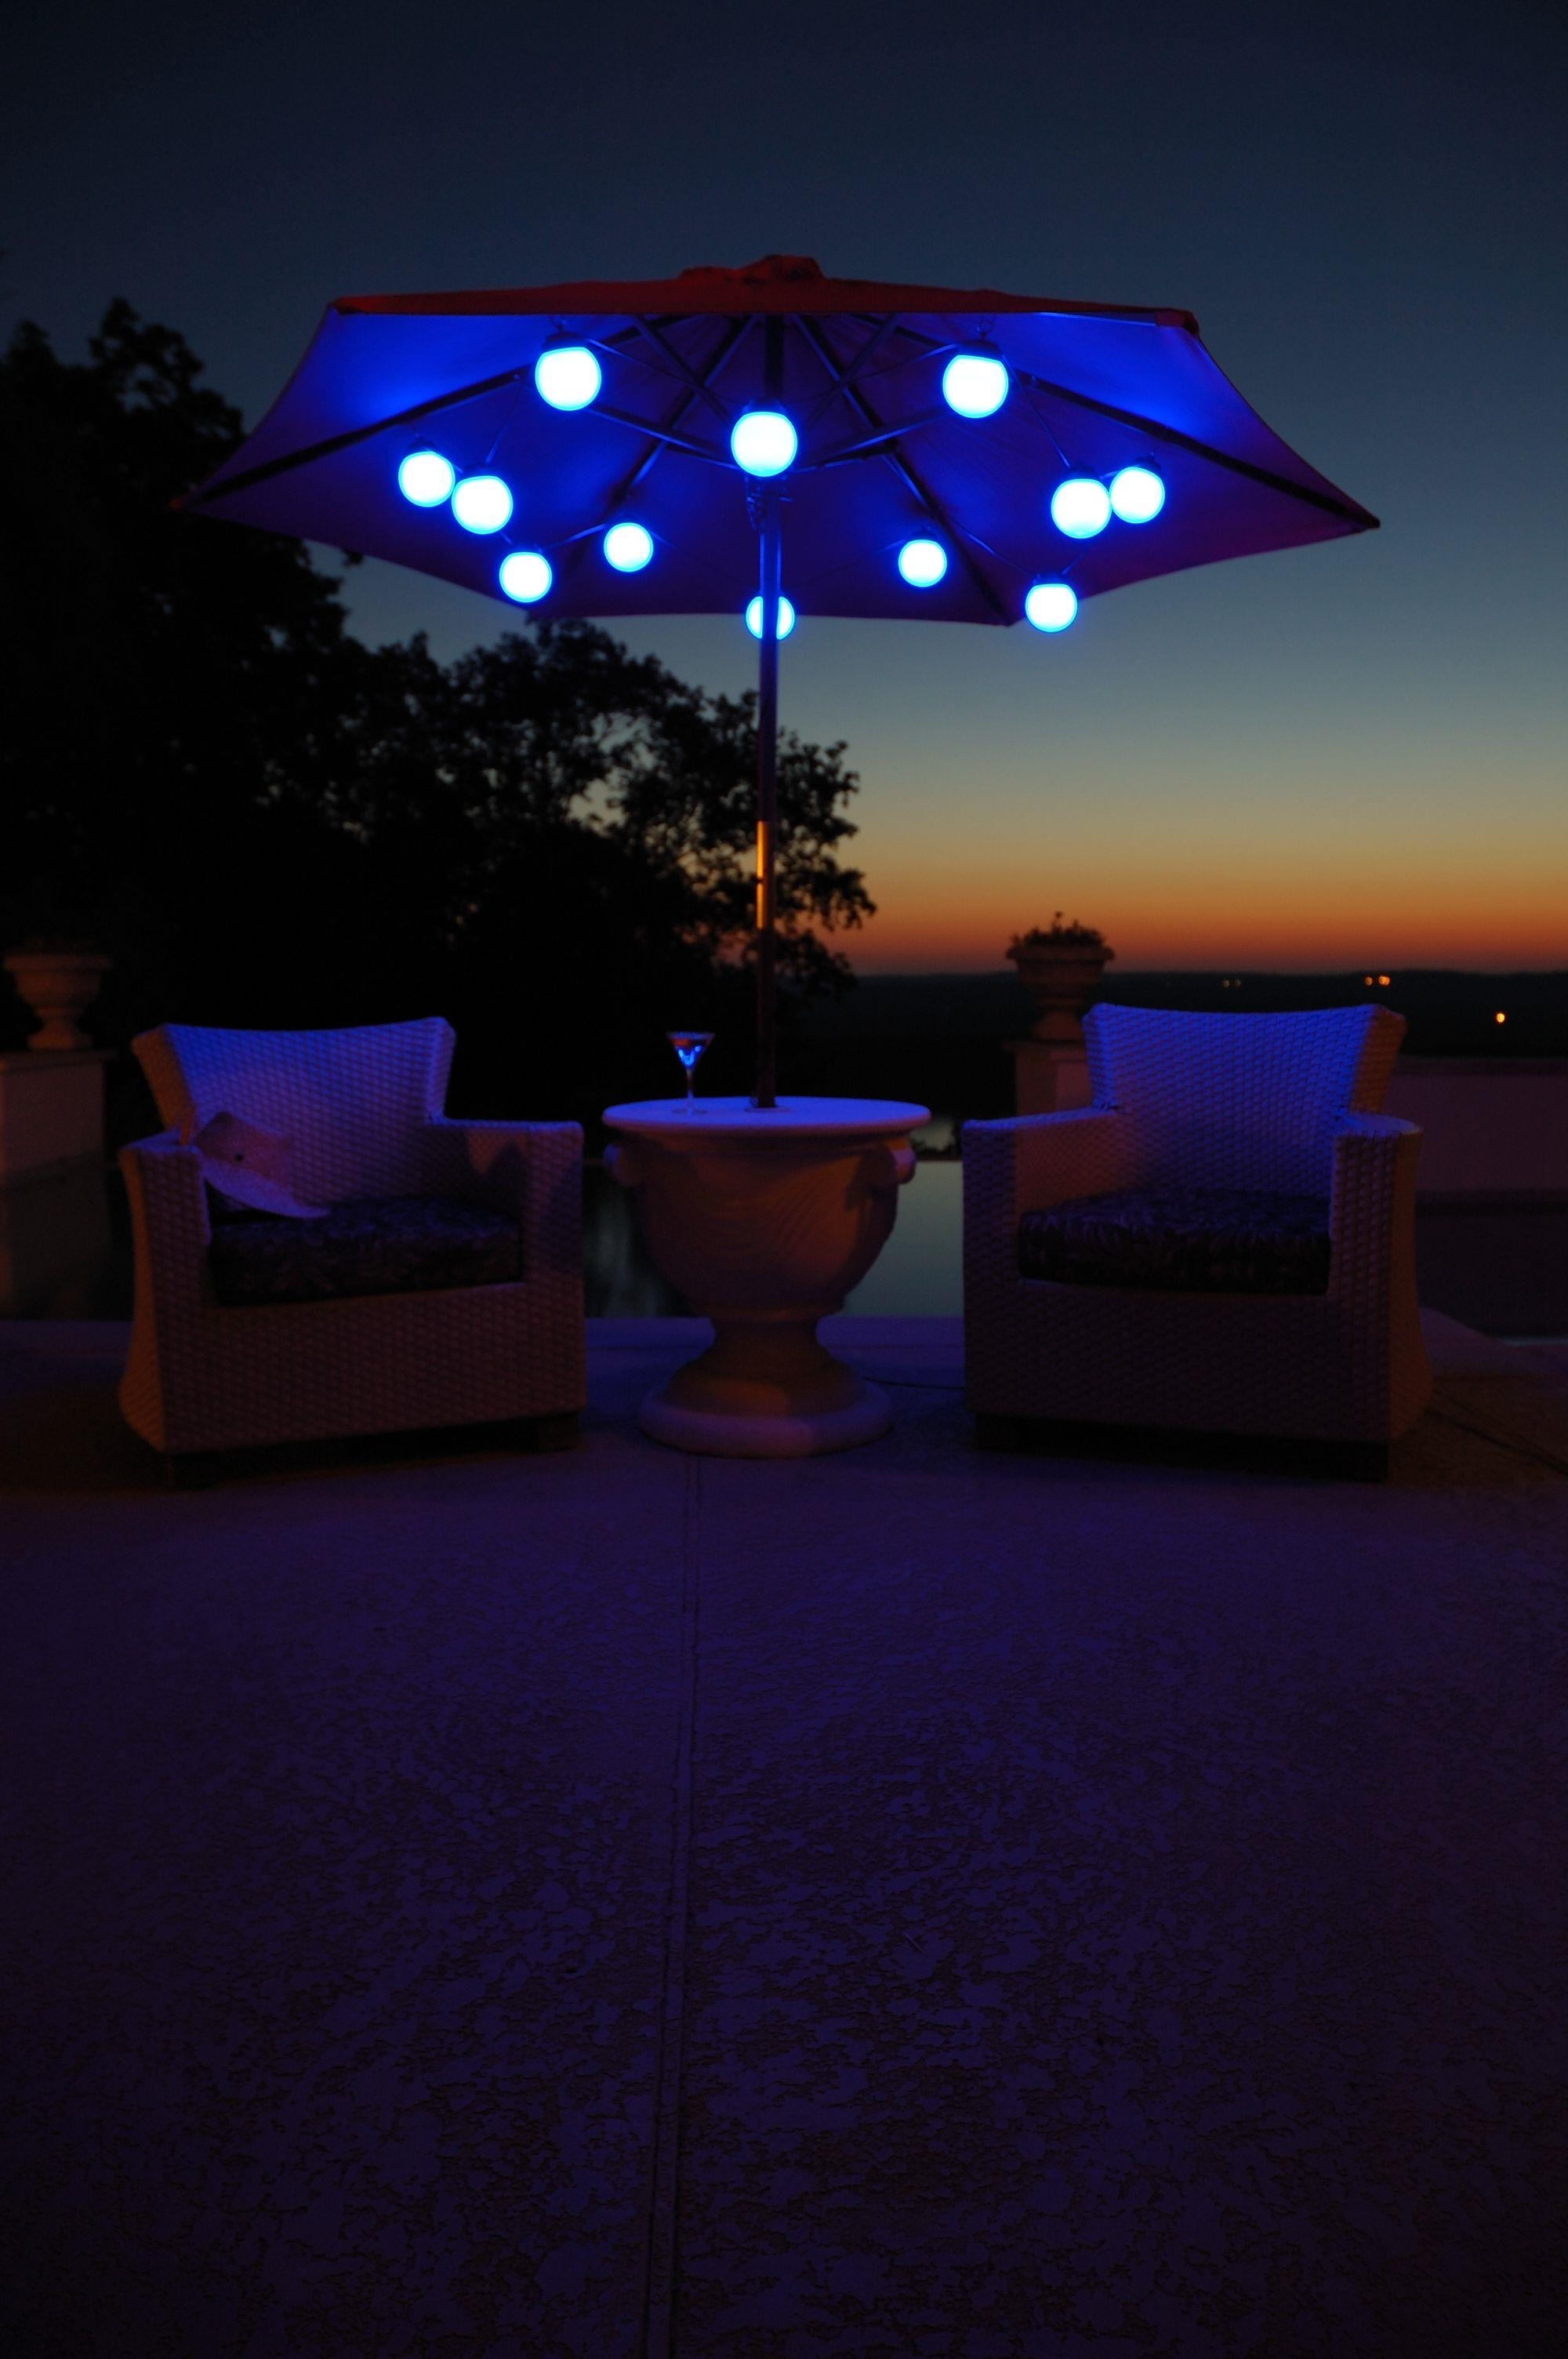 Well Known Patio Umbrellas With Led Lights Within 49 Lights For Patio Umbrella, Patio Umbrella Lights Umbrella Lights (View 8 of 20)